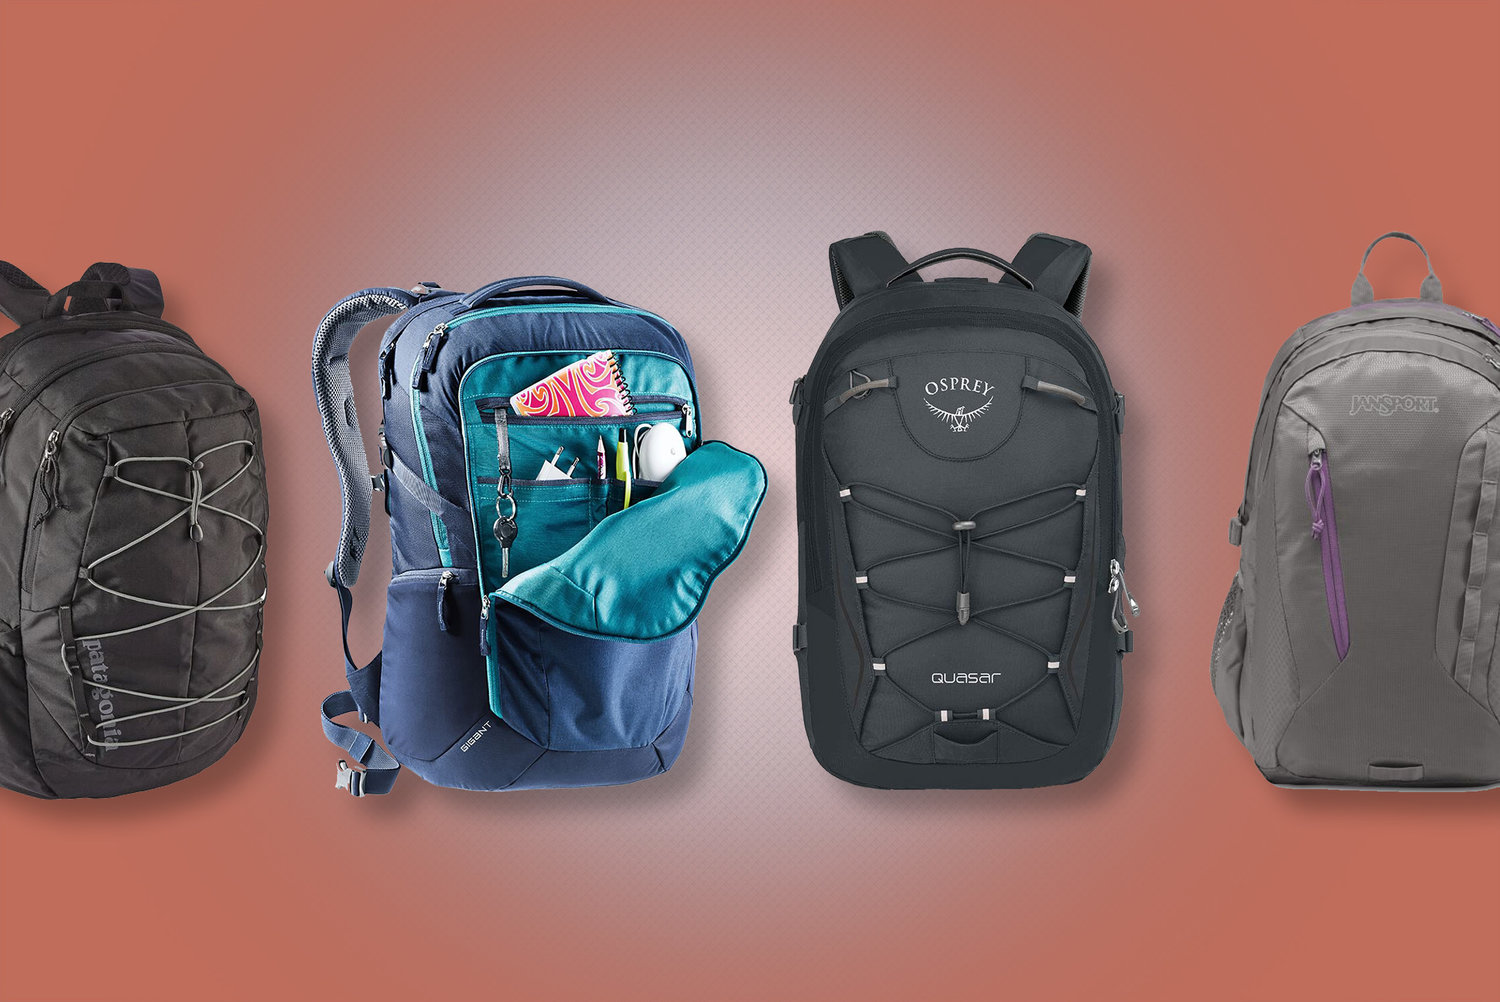 c7fd65f3c9 11 Backpacks Like North Face You Should Check Out